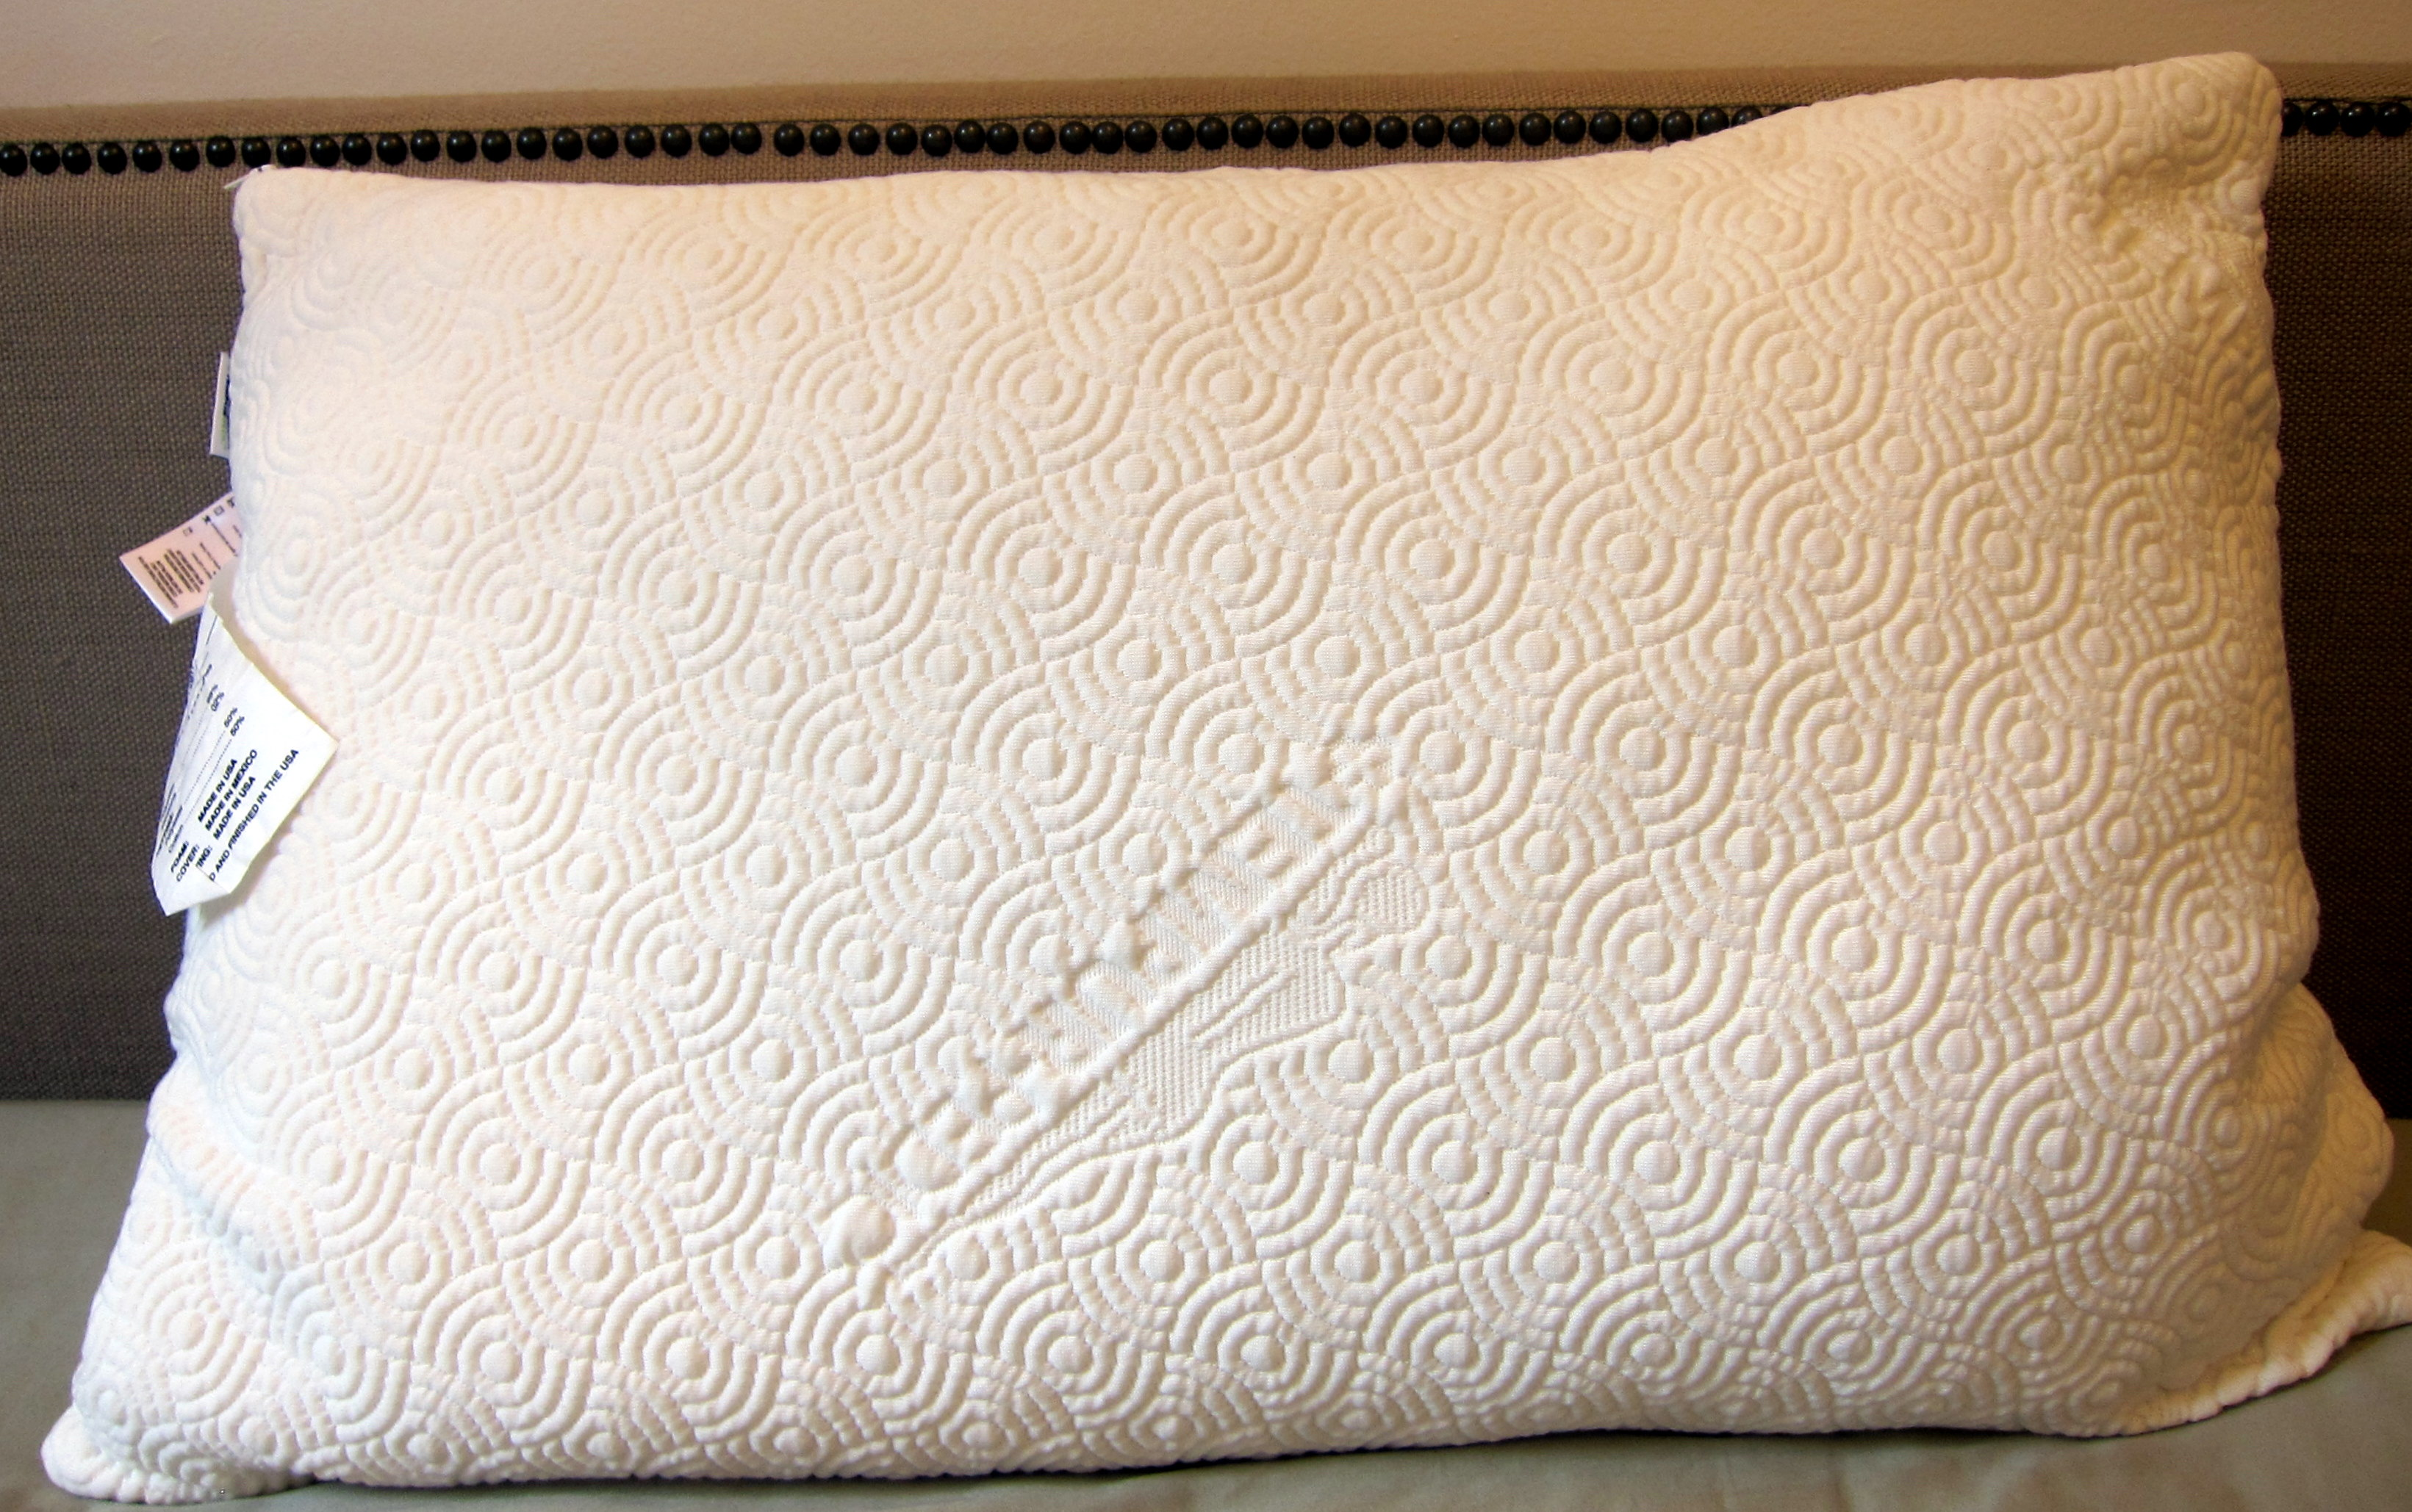 my tempurpedic cloud pillow - Tempurpedic Pillows